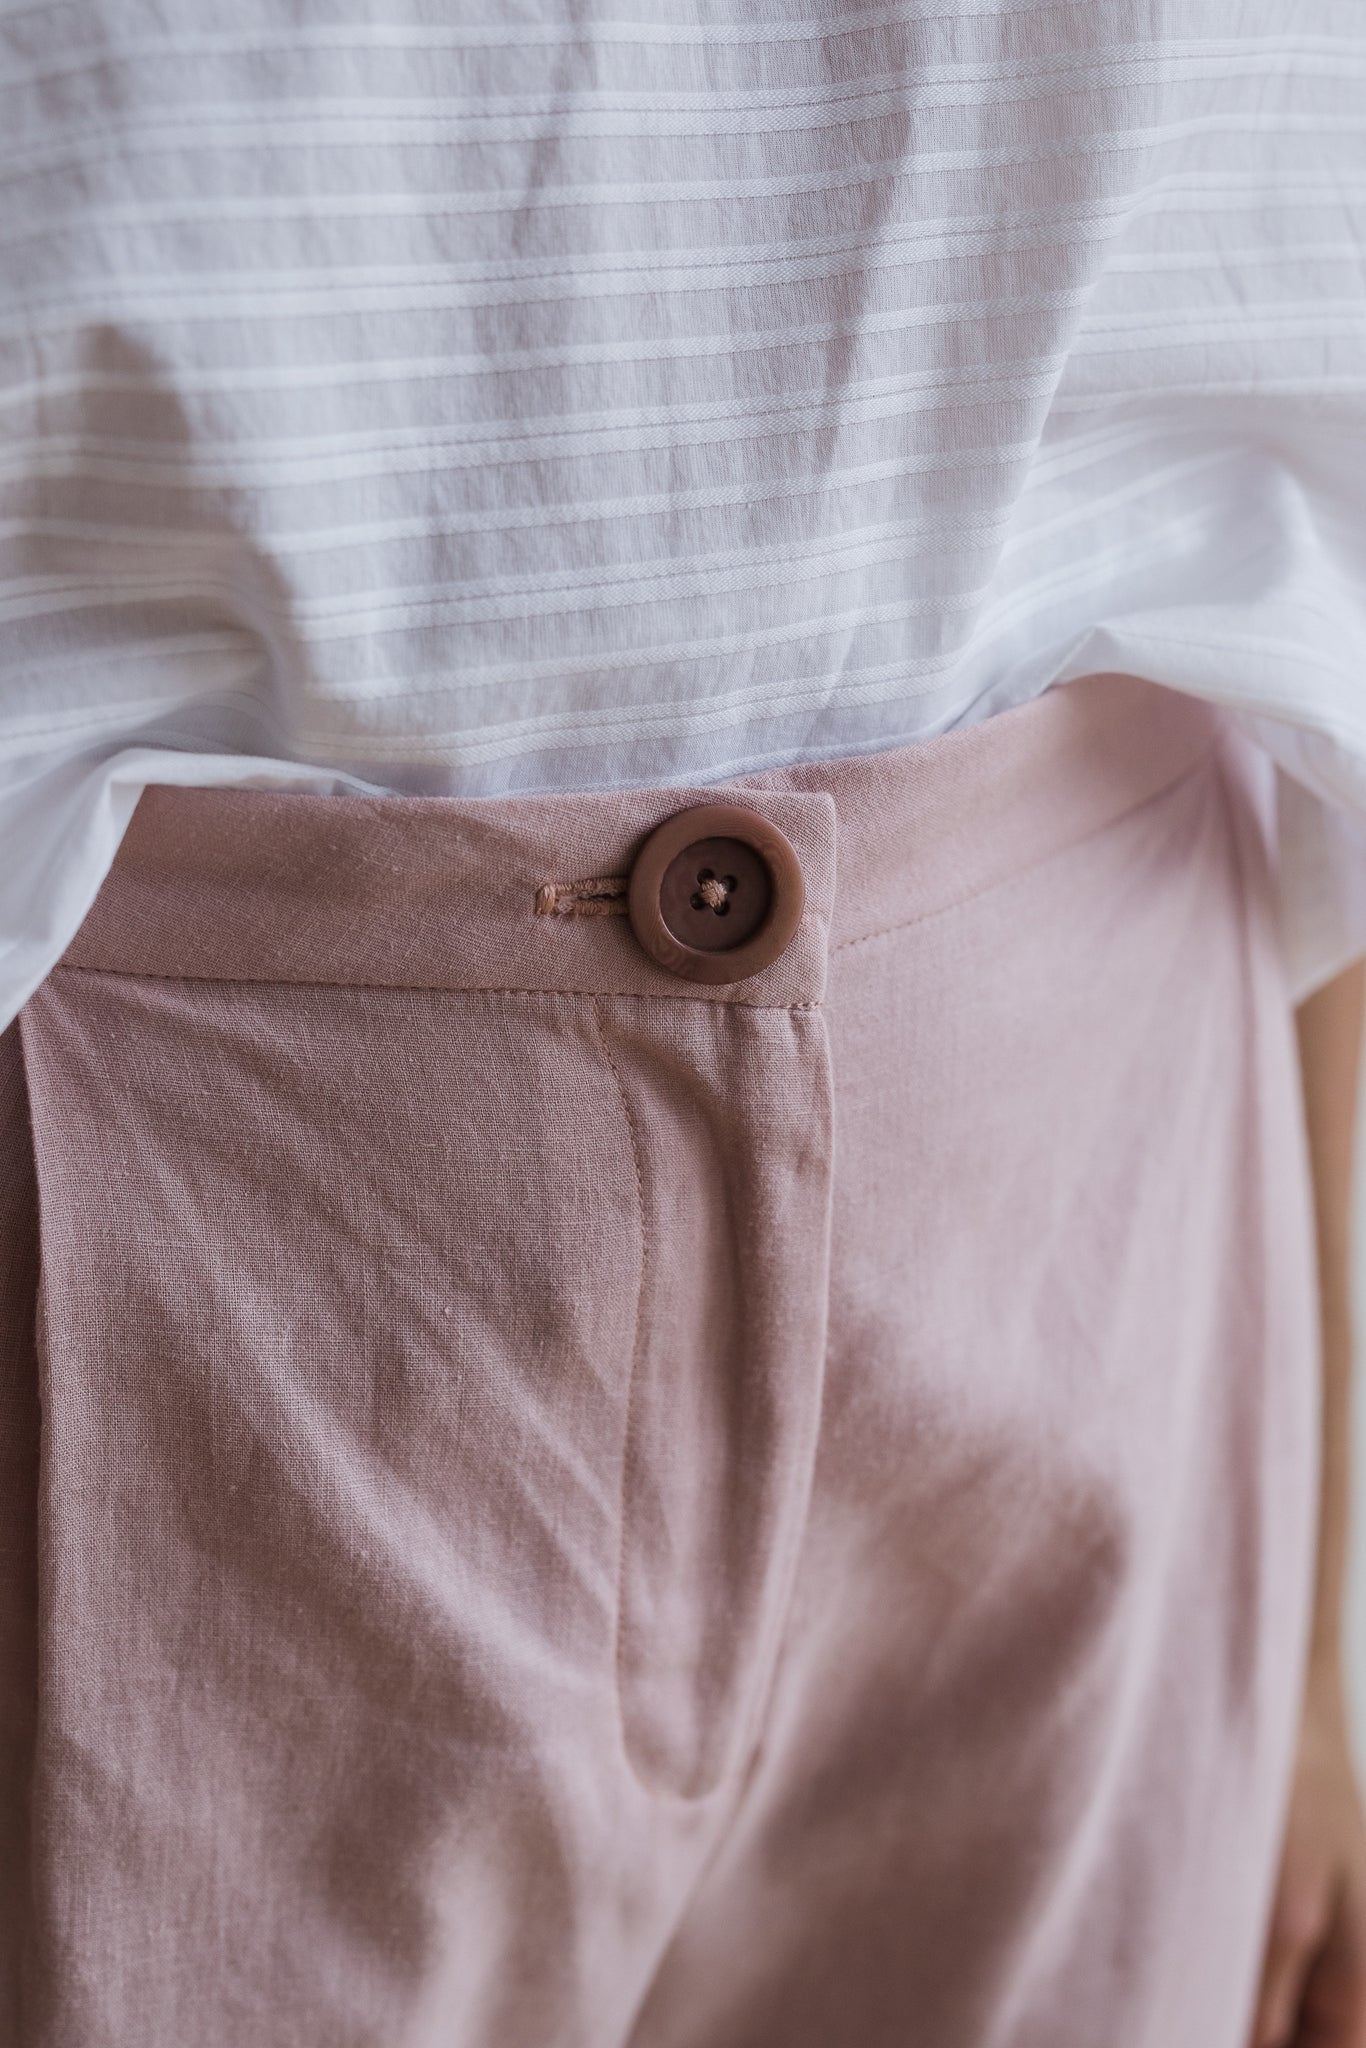 Kiln Tailored Pant - Blush - Ricepaperthelabel